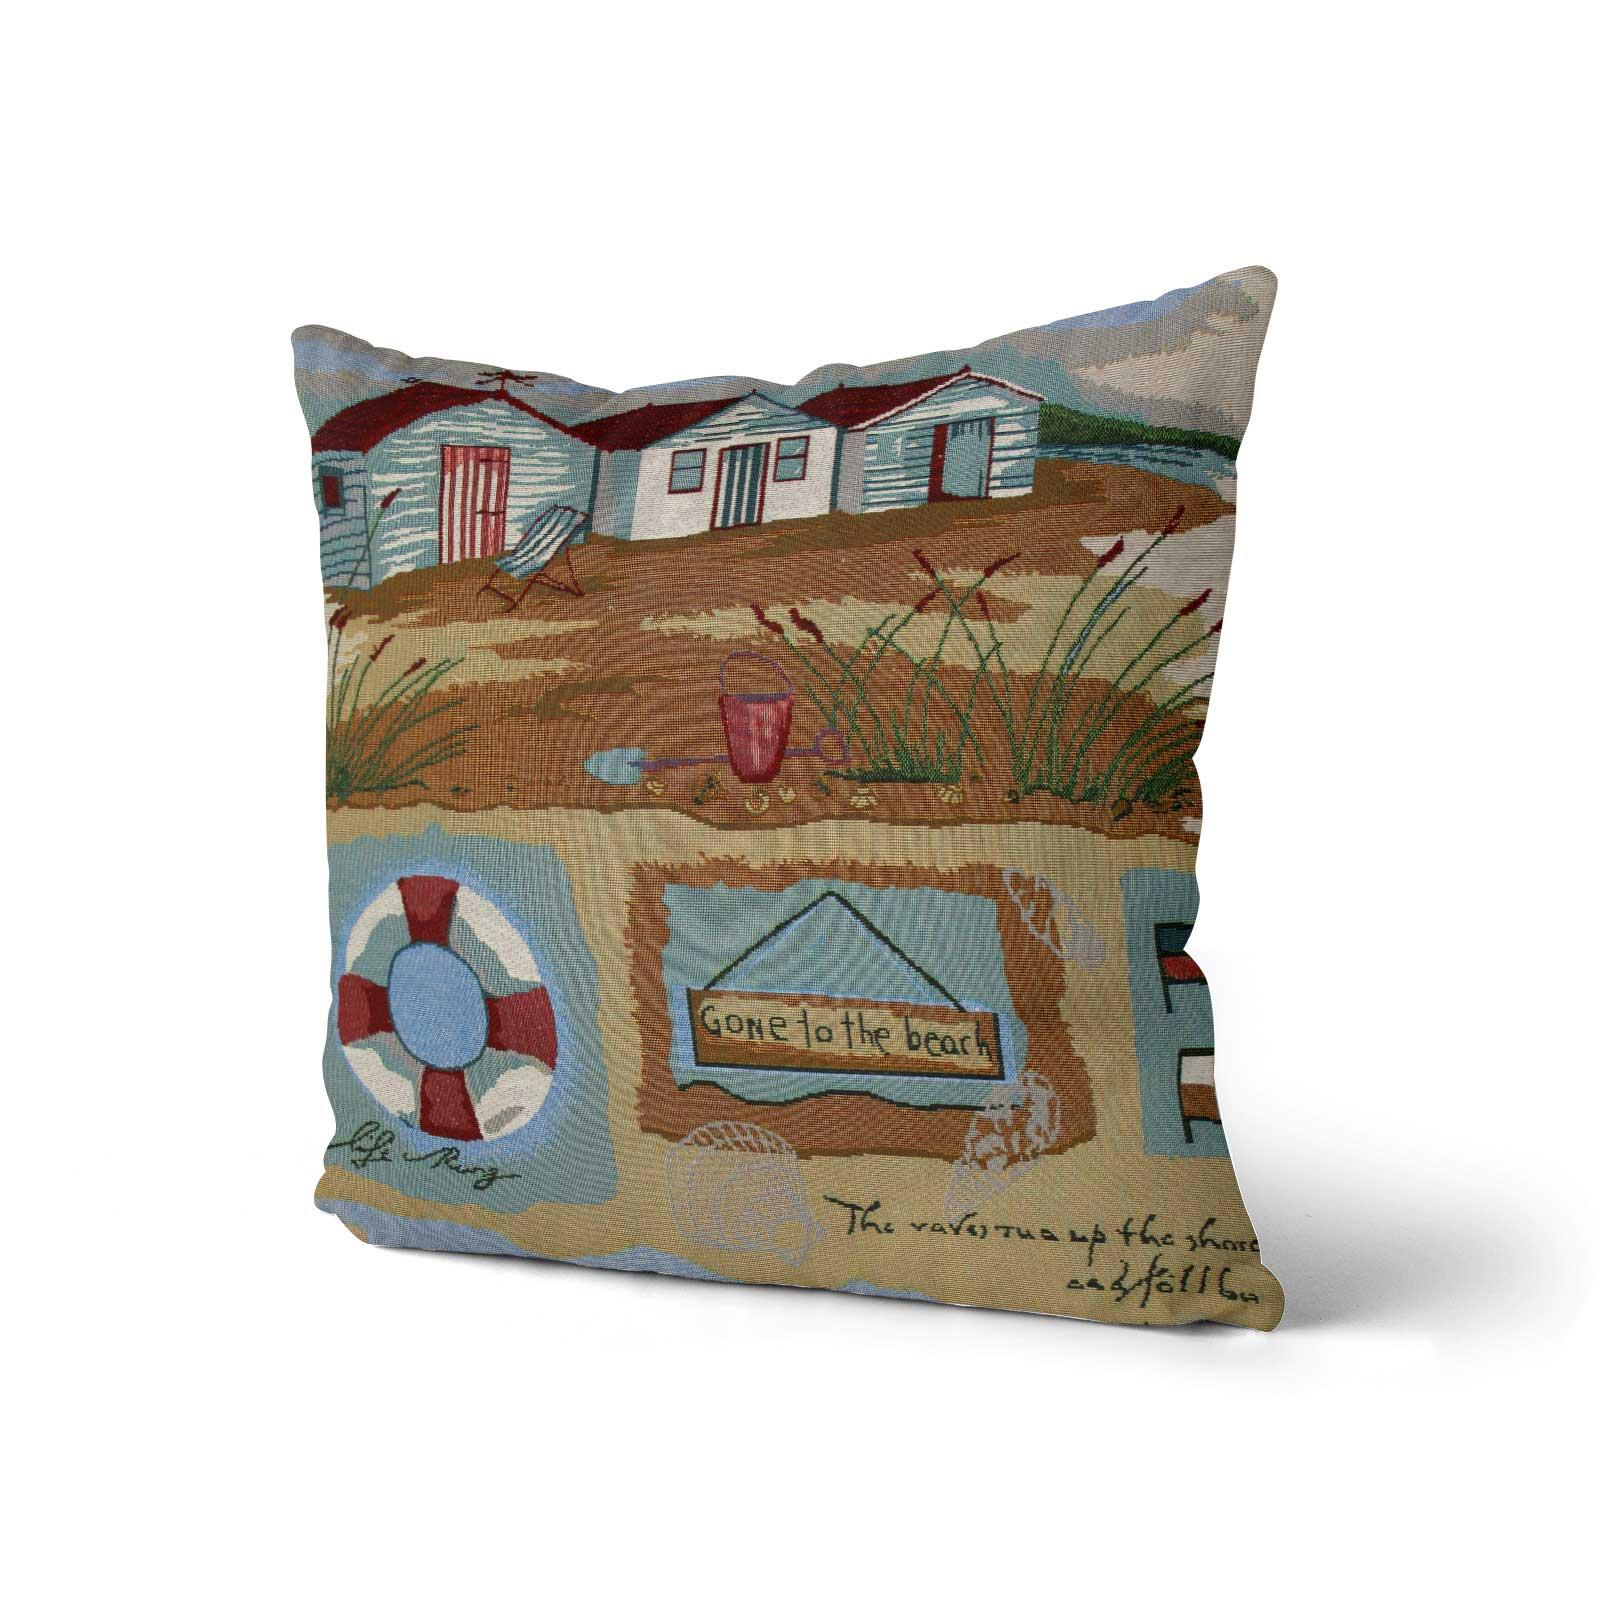 Tapestry-Cushion-Covers-Vintage-Pillow-Cover-Collection-18-034-45cm-Filled-Cushions thumbnail 59